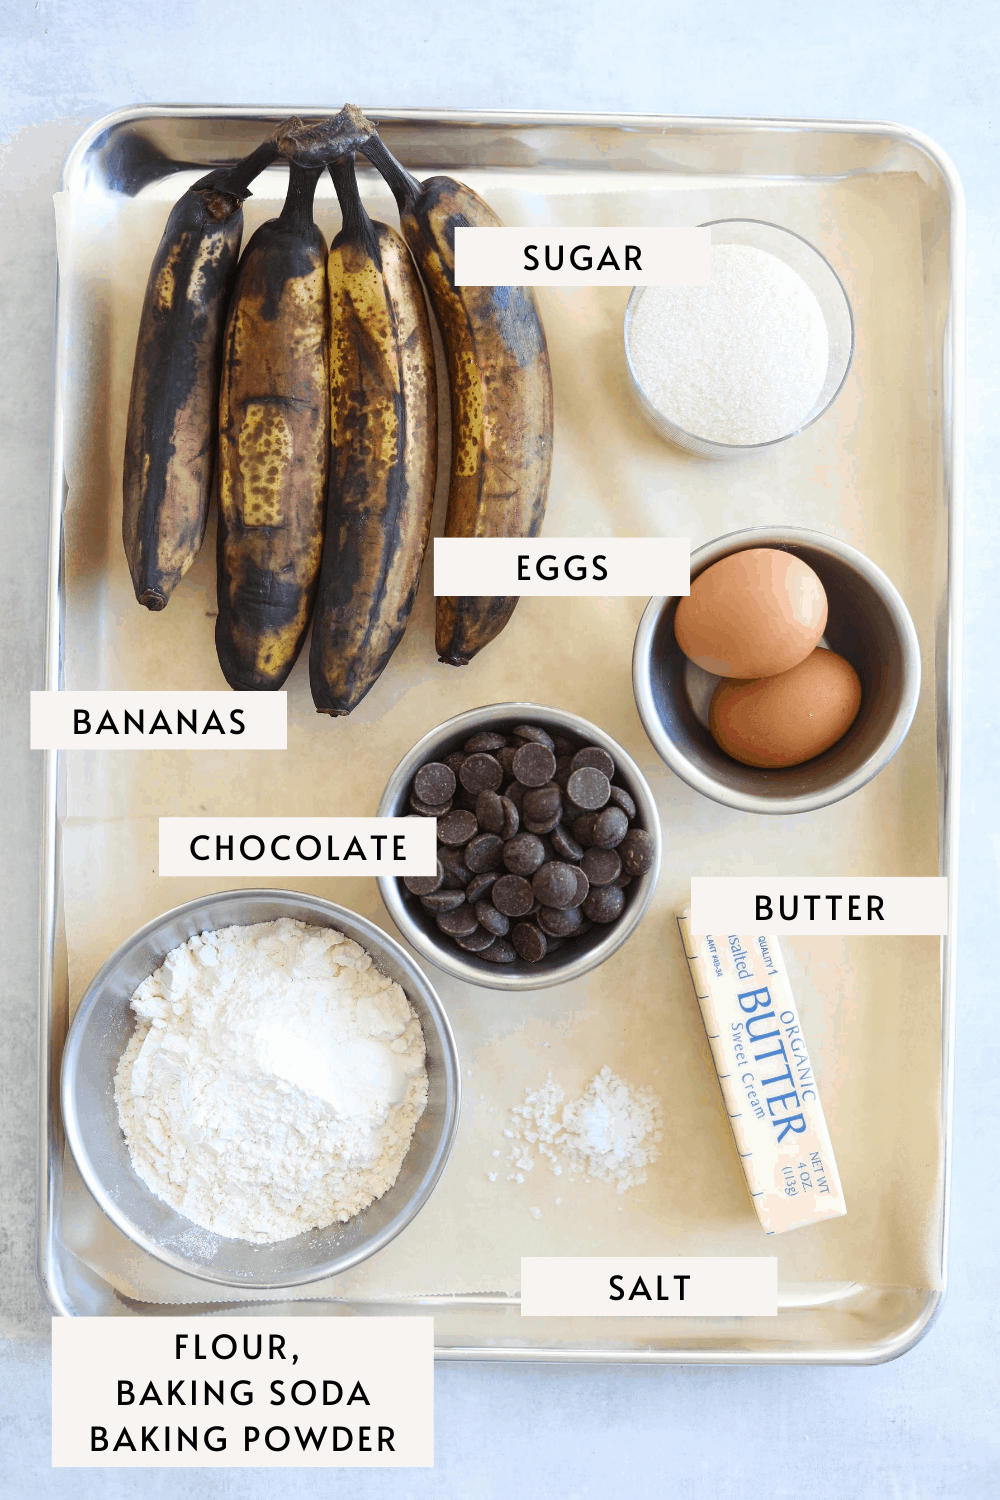 a baking tray with recipe ingredients such as: ripe bananas, chocolate chips, butter and eggs